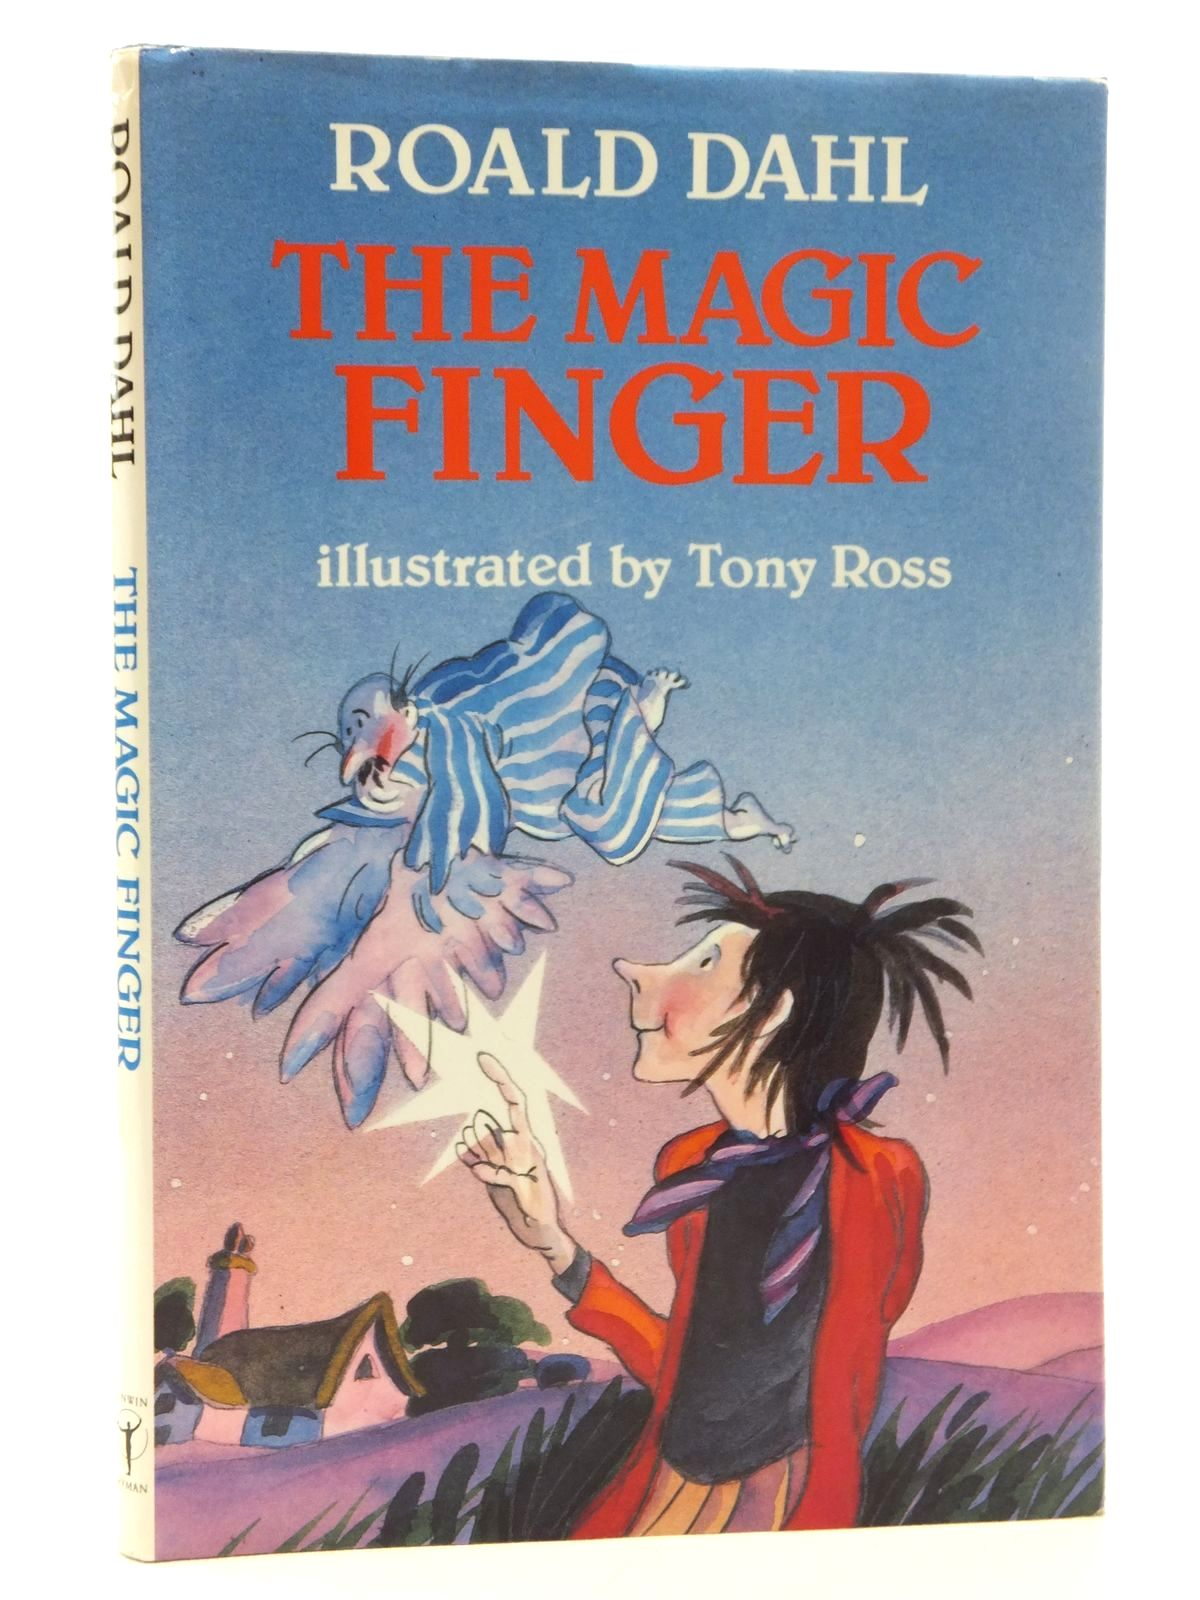 Photo of THE MAGIC FINGER written by Dahl, Roald illustrated by Ross, Tony published by Unwin Hyman (STOCK CODE: 2123720)  for sale by Stella & Rose's Books